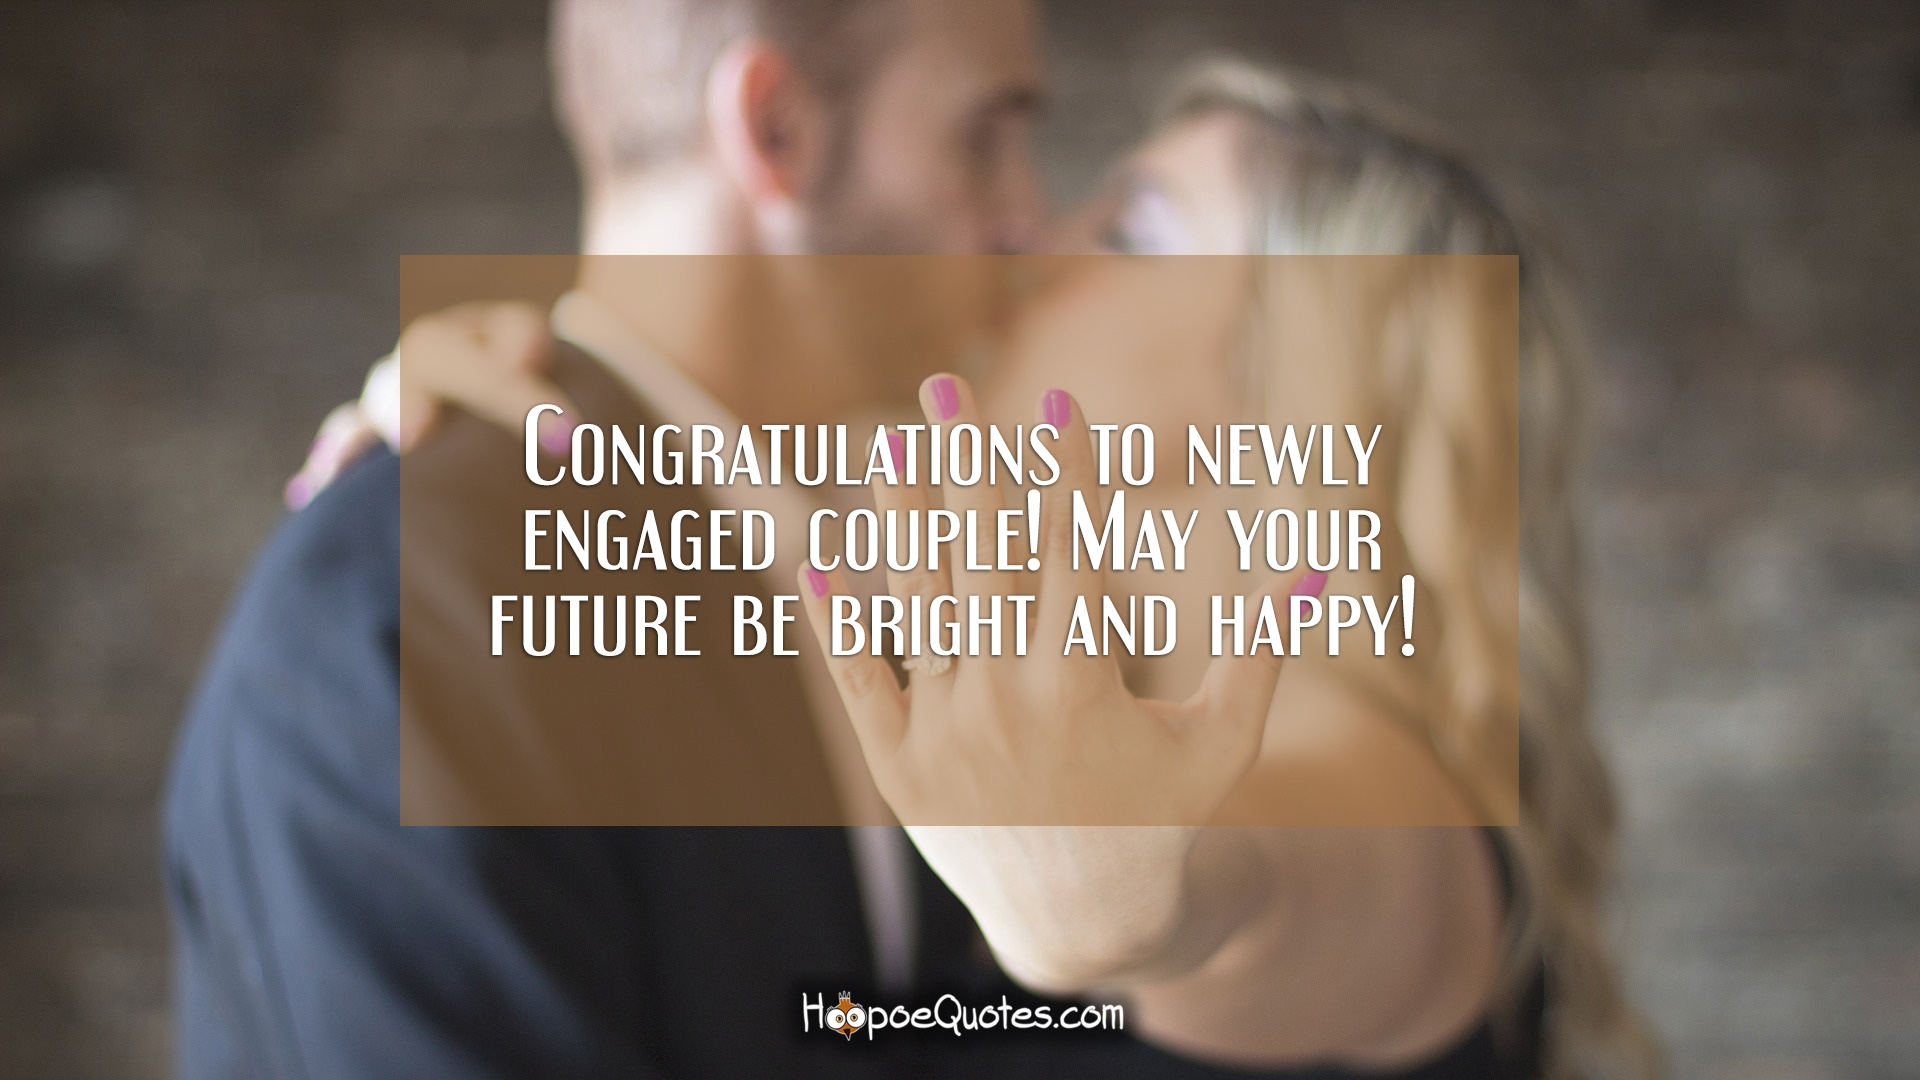 Congratulations To Newly Engaged Couple May Your Future Be Bright